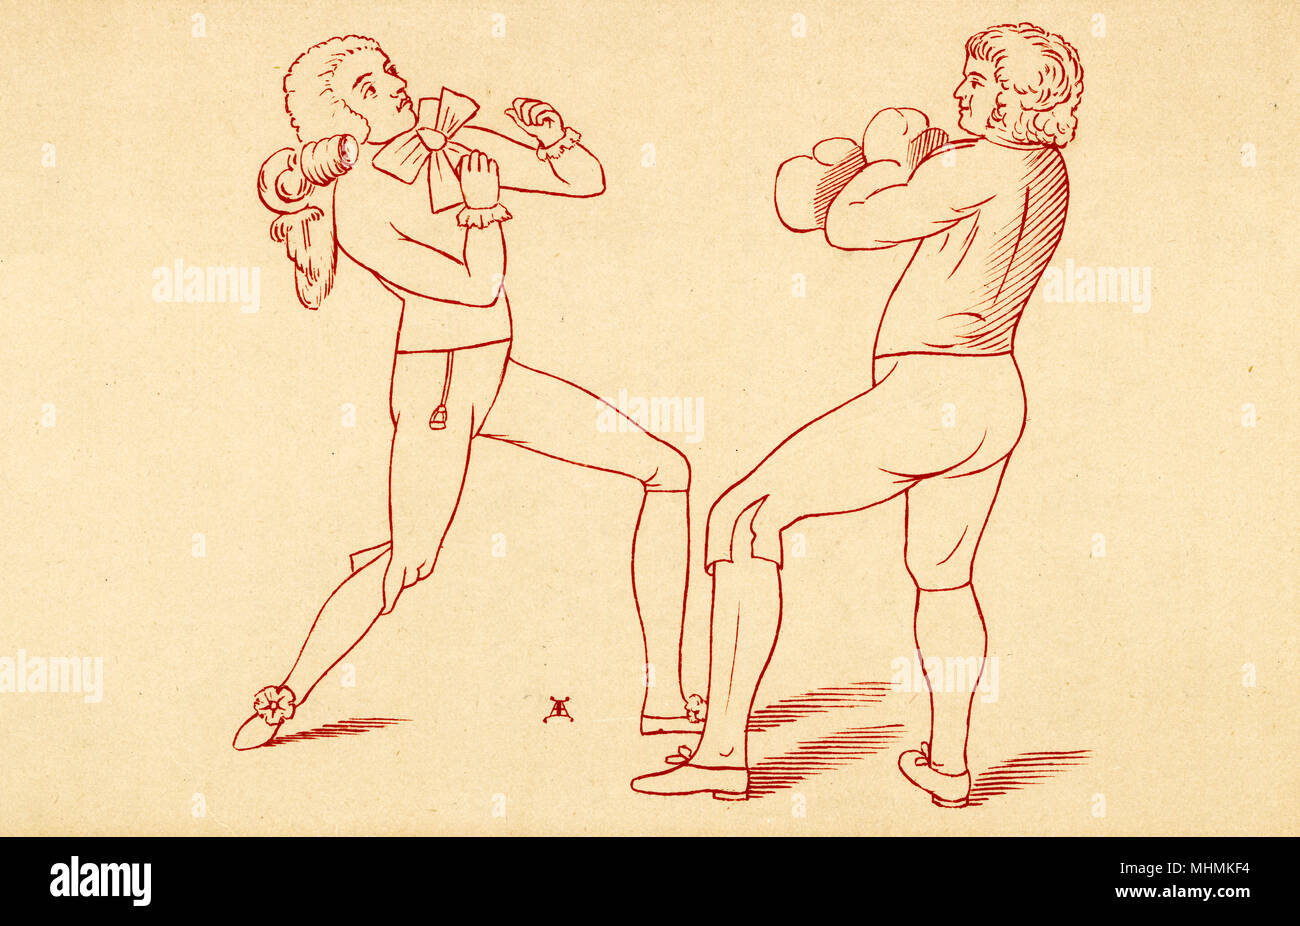 'Boxing made easy, ou donner une leçon' Humphreys Date: 1788 Photo Stock